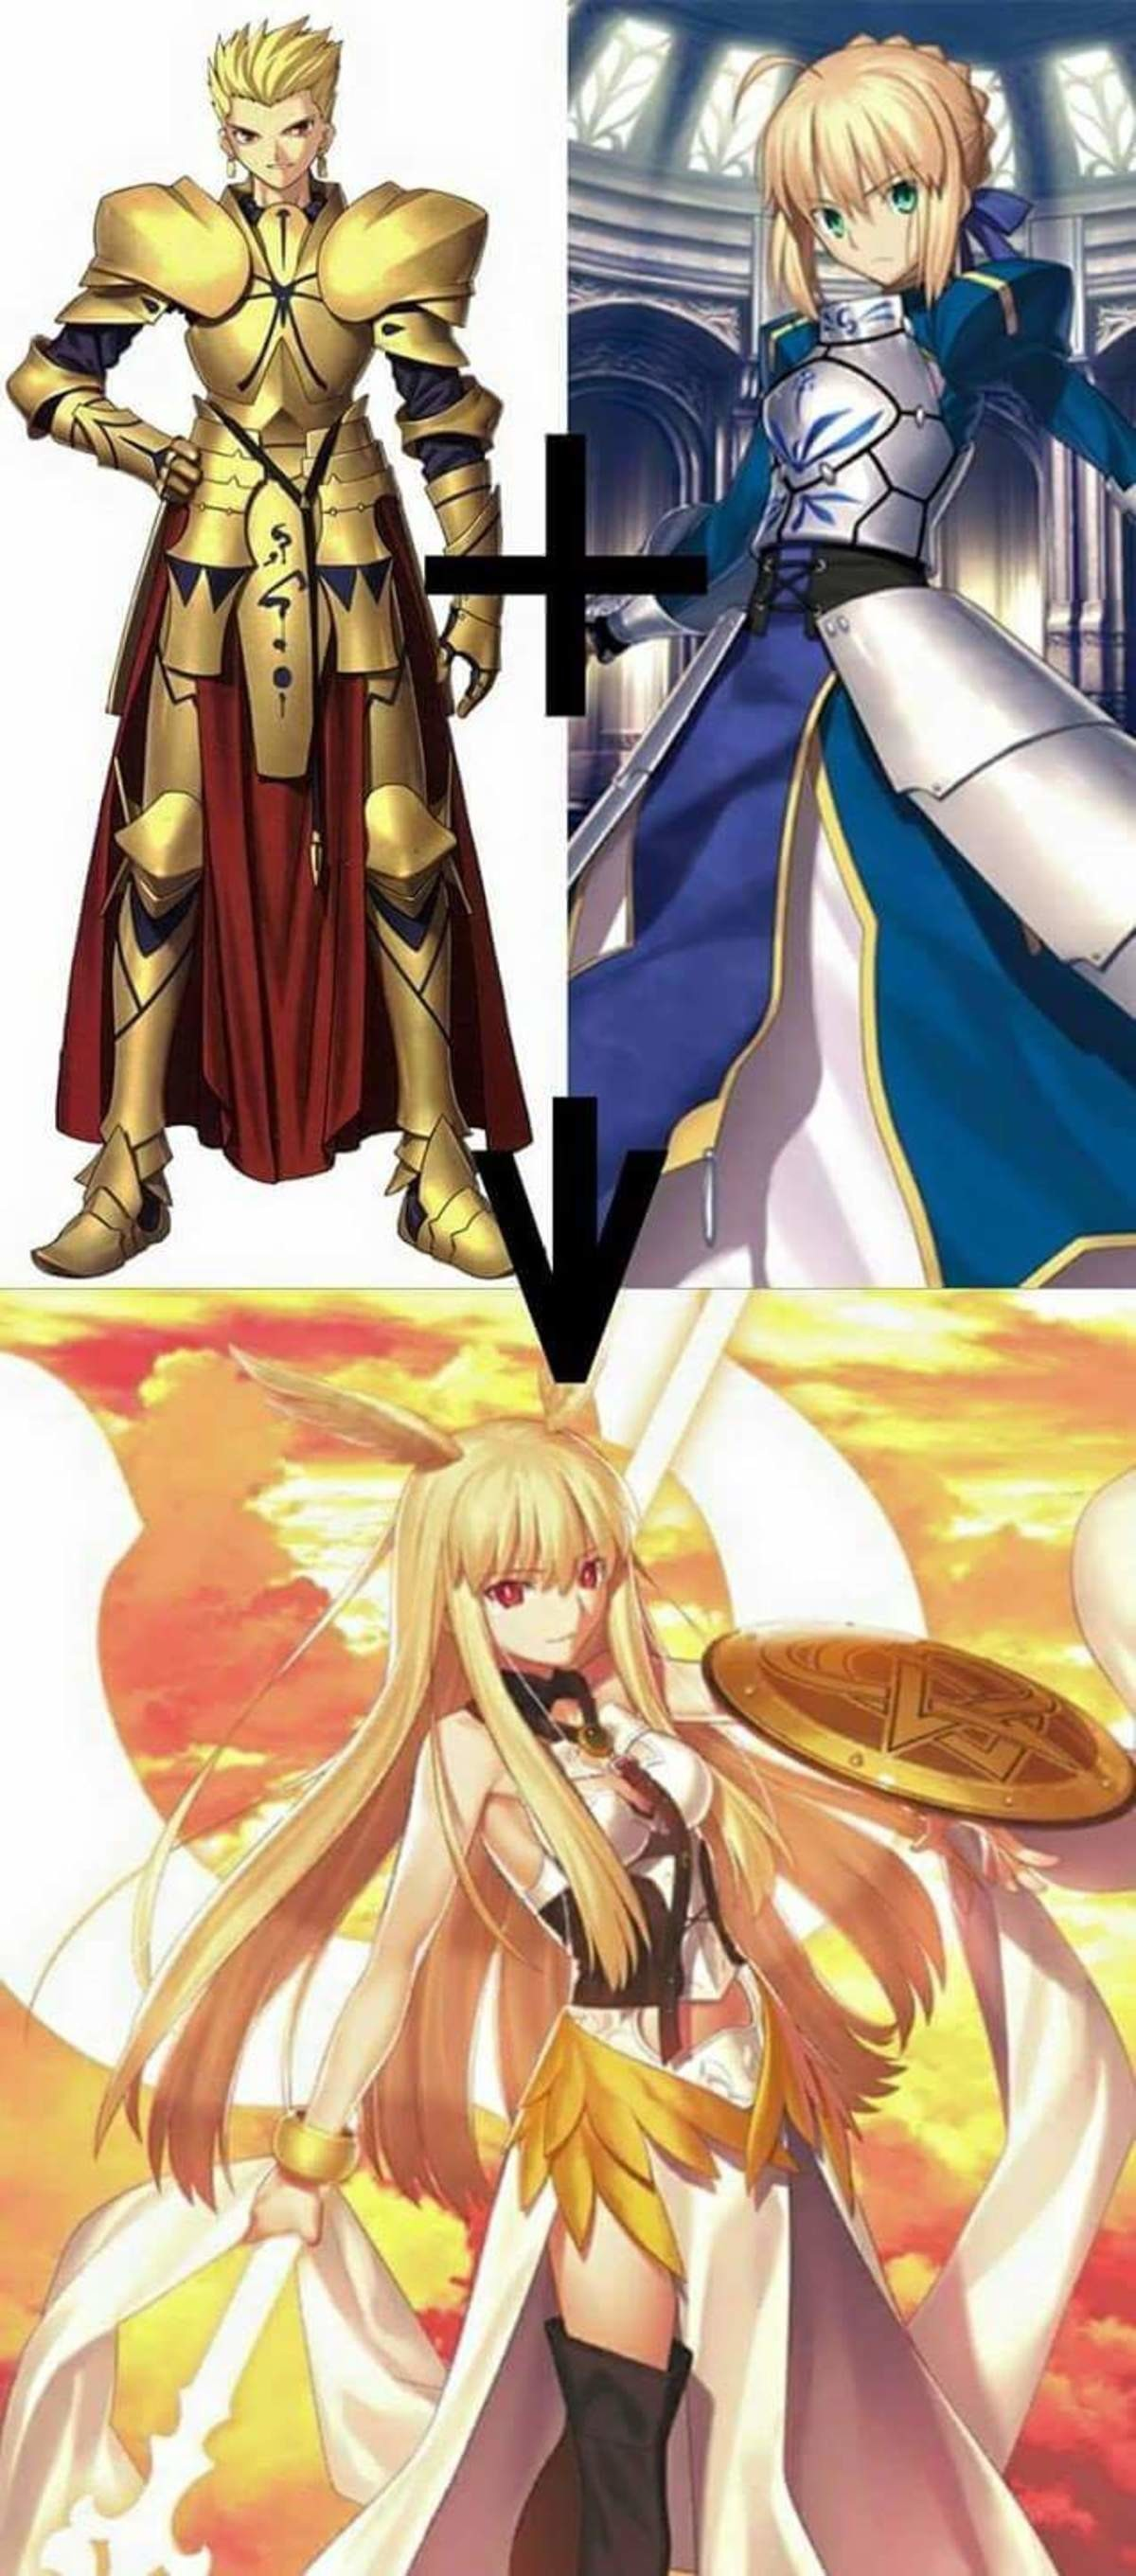 Could Gill Actually Got Saber?. join list: SmolHol (1472 subs)Mention History.. I just started watching season 2 of UBW recently Why does Gilgamesh still have his powers? I thought he became a regular human after the events of Fate Zero?